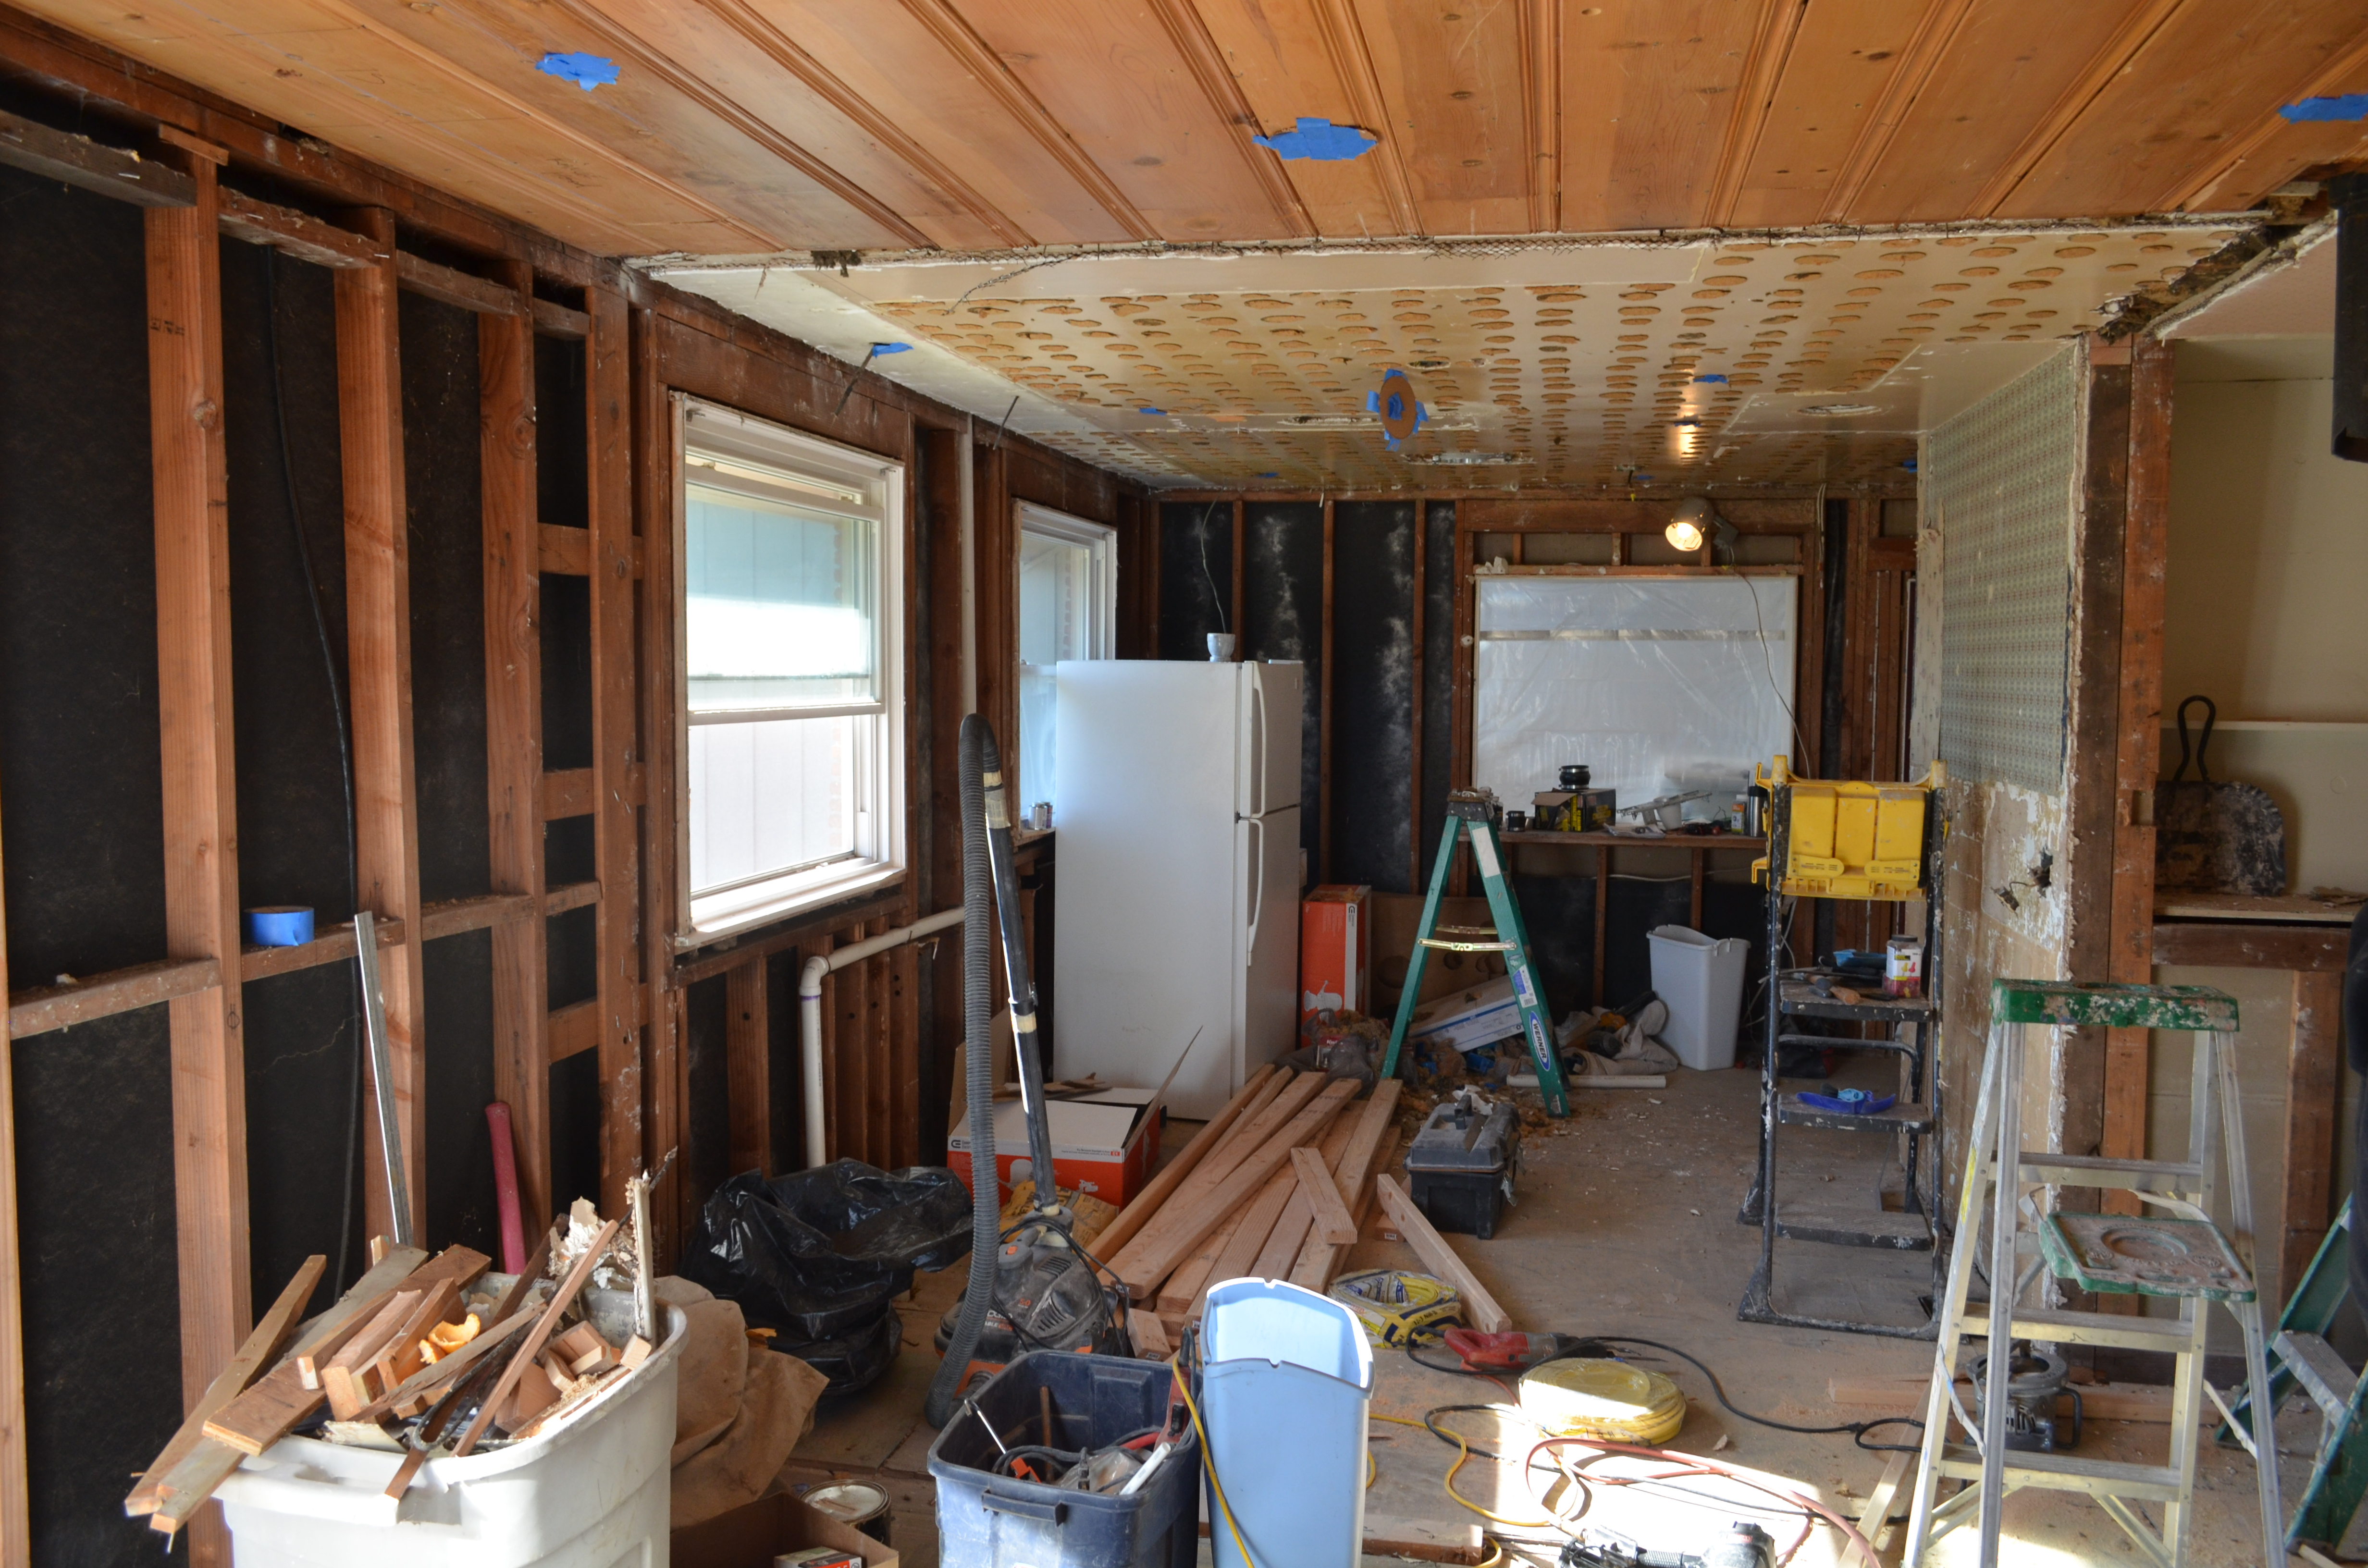 Home Remodeling: General Contractors